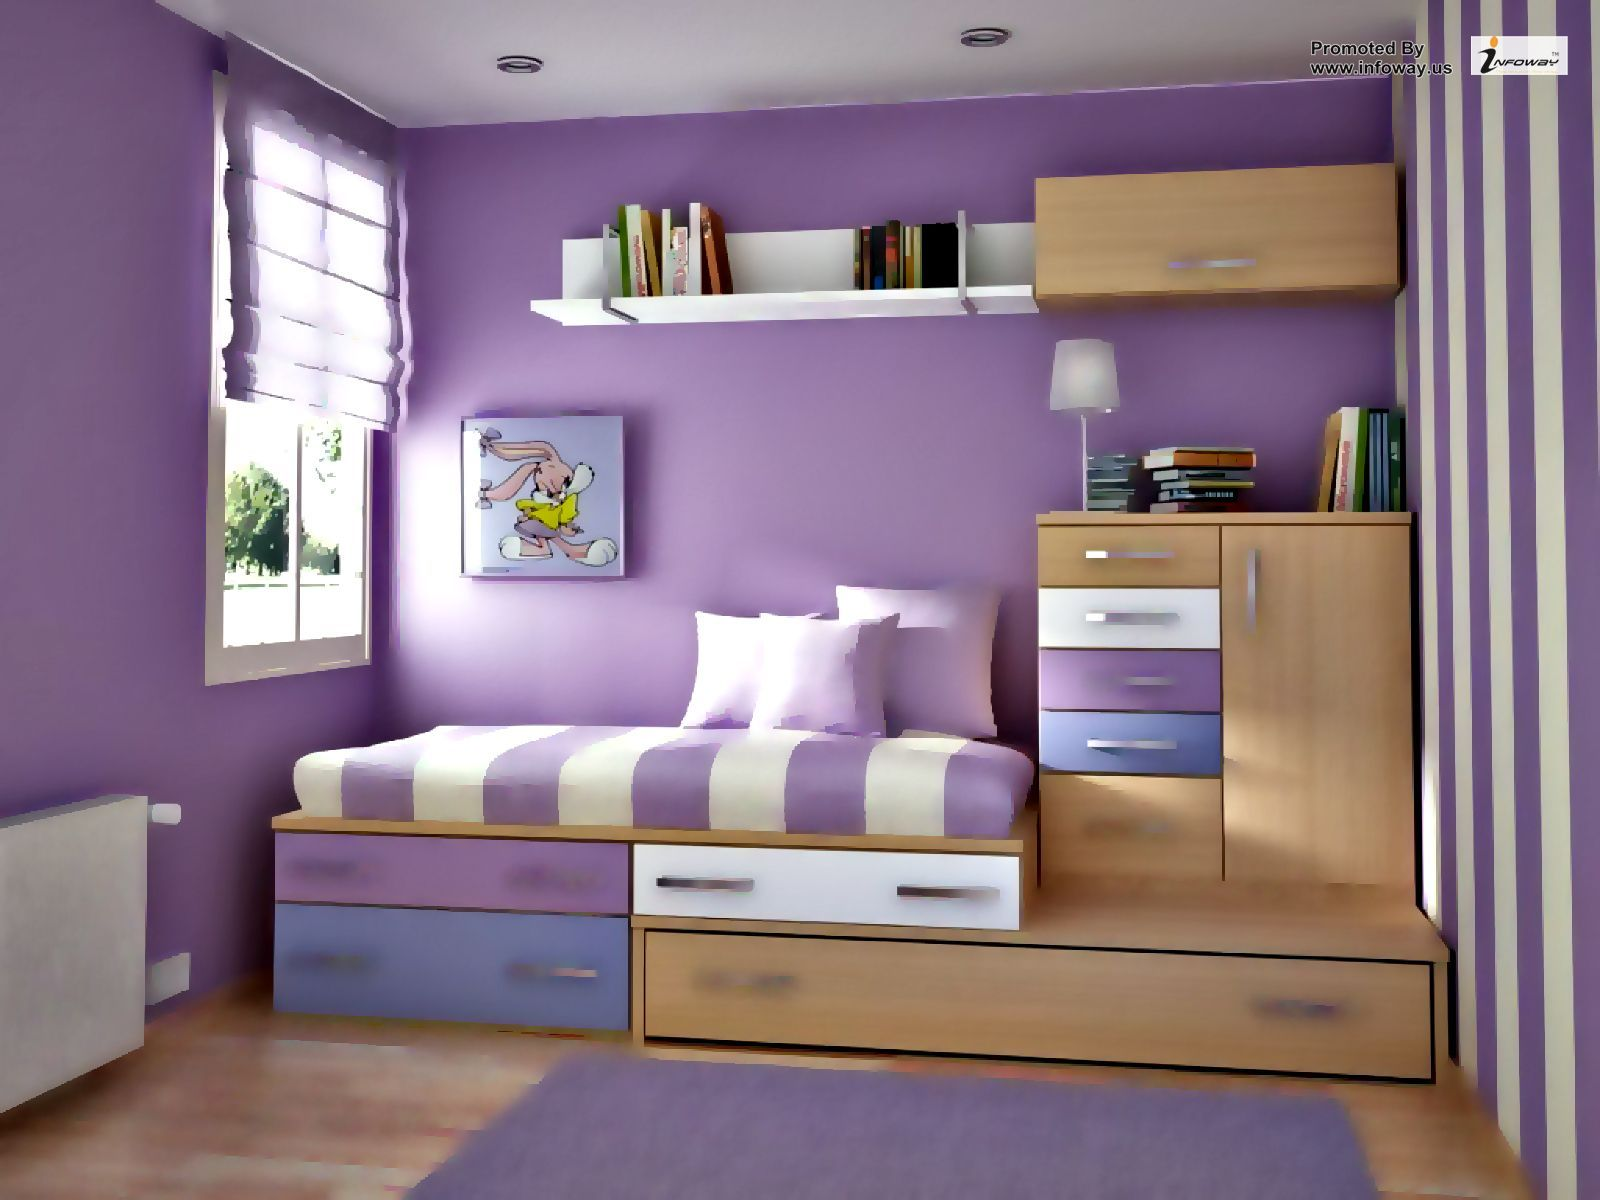 Bedroom Decoration Elegant Paint Colors Basement Bedrooms and